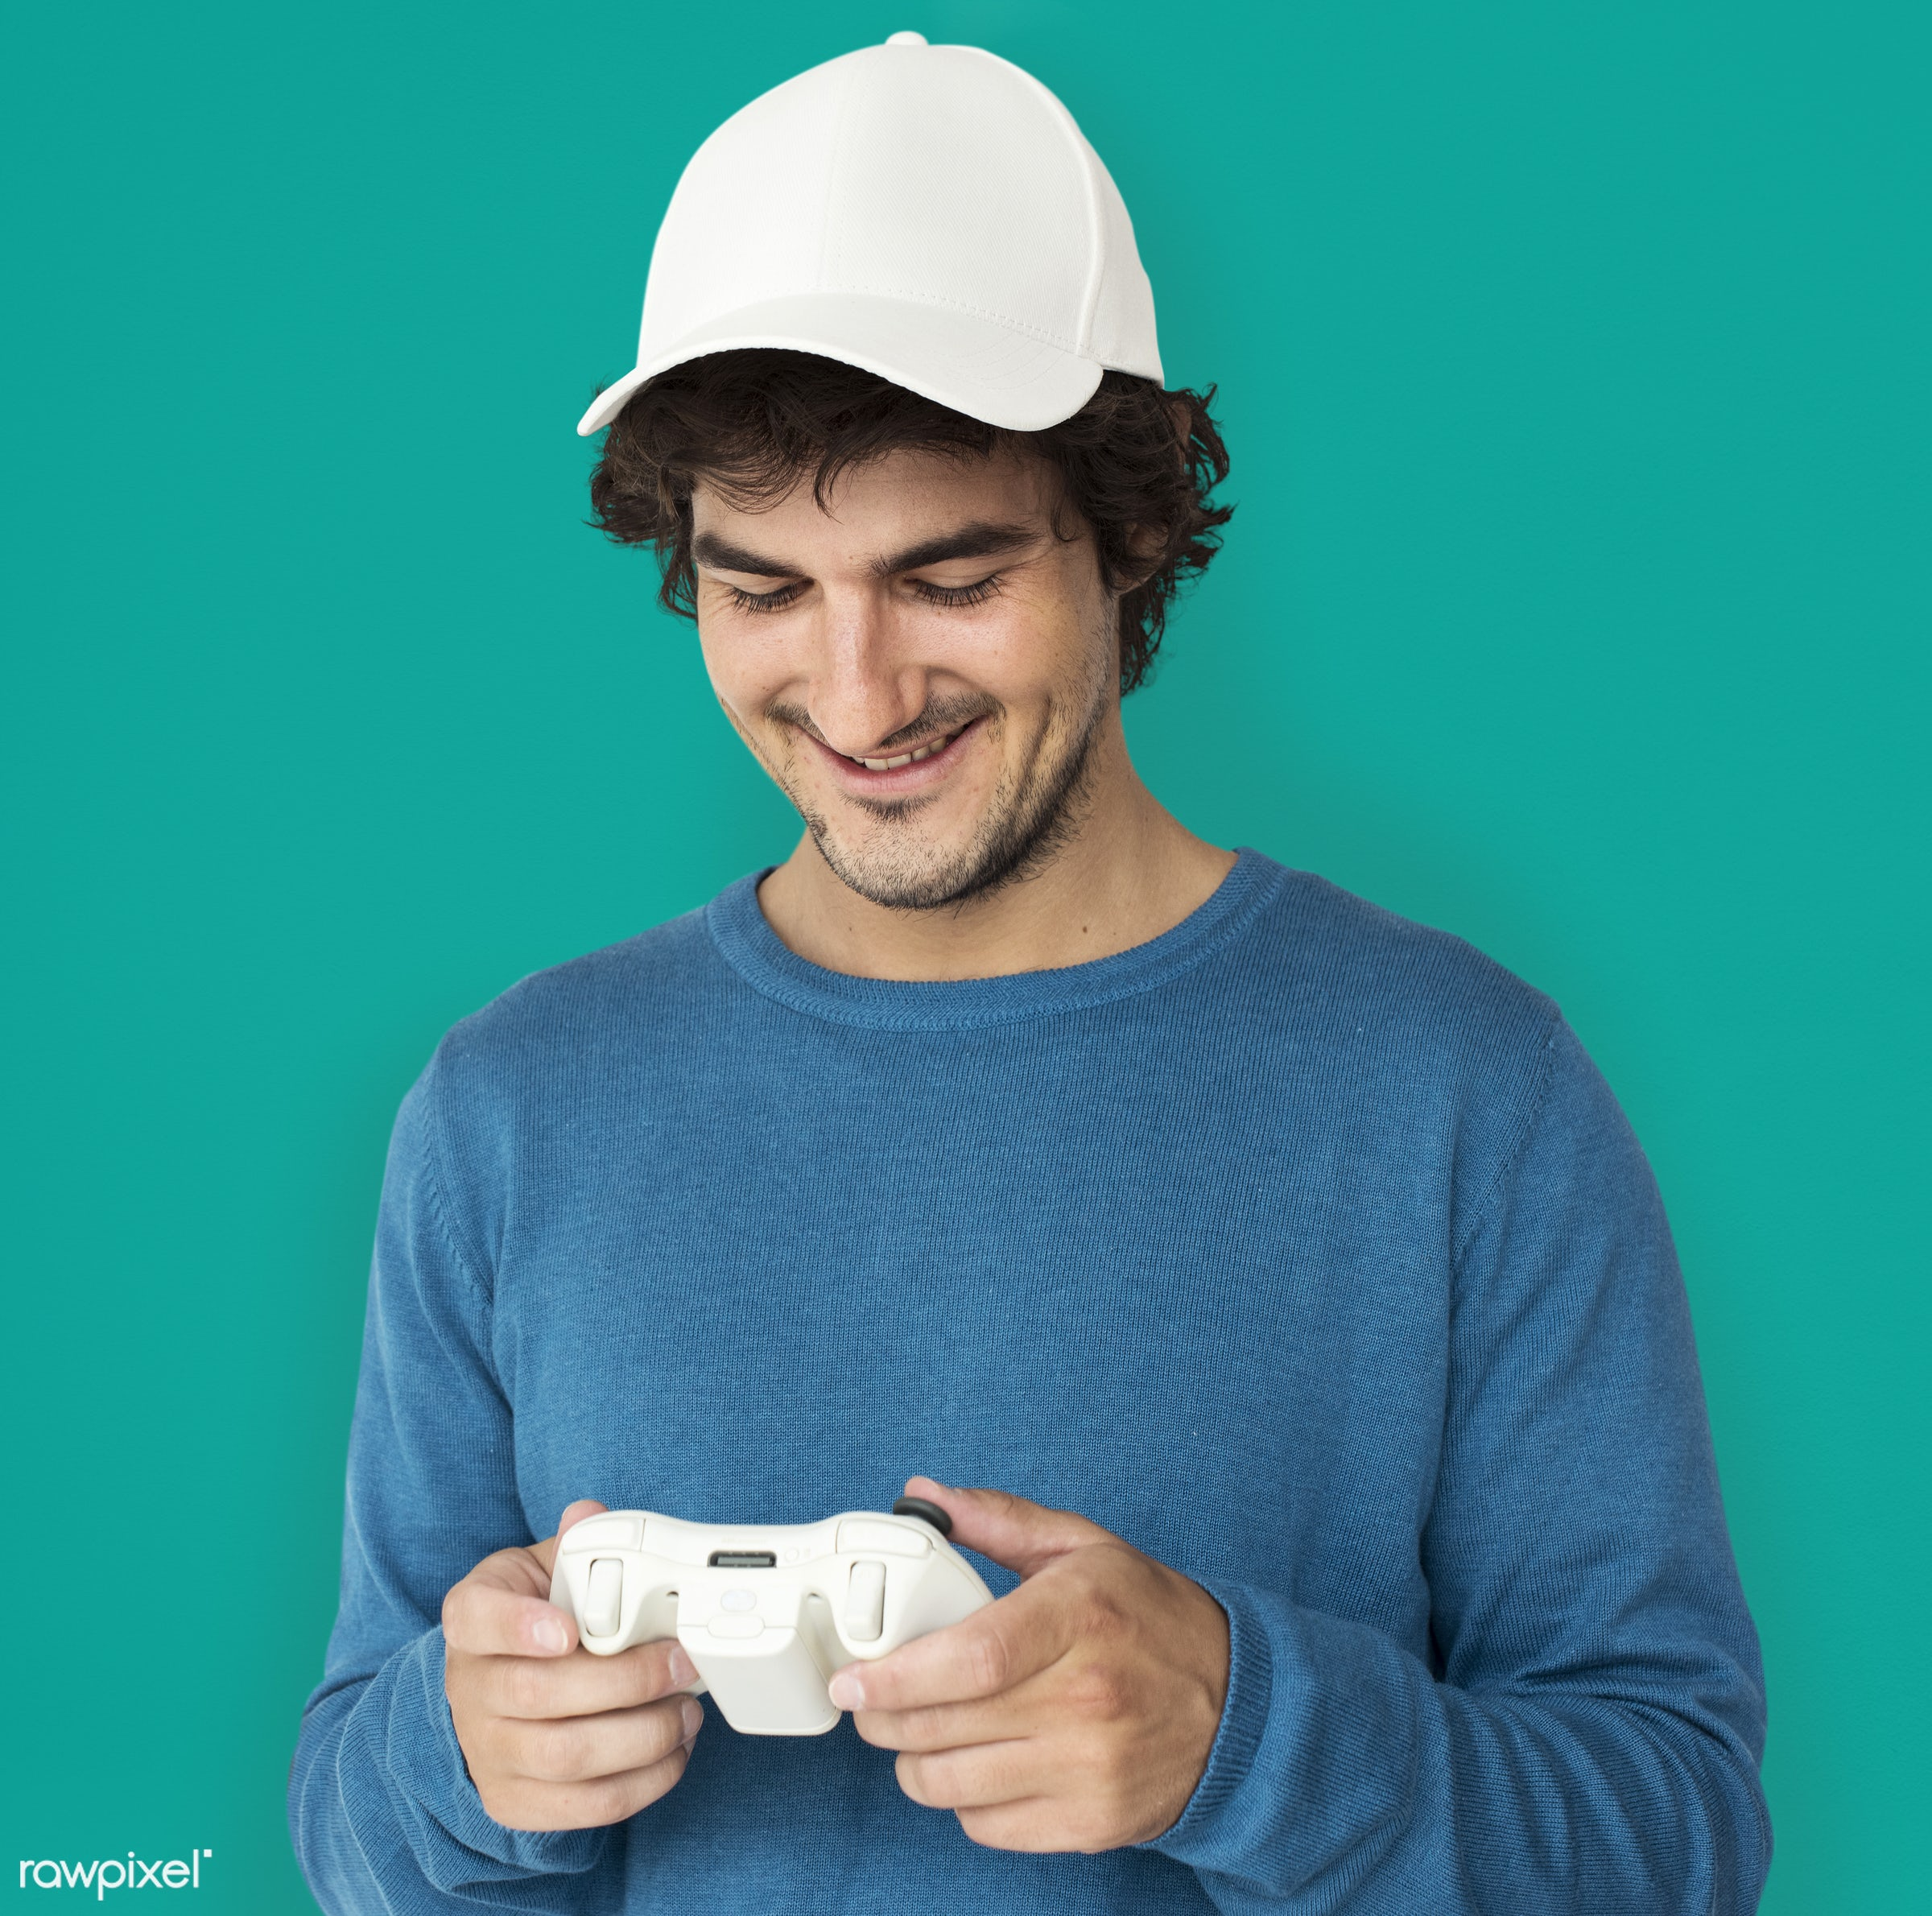 expression, person, technology, gaming, recreation, race, people, caucasian, westerner, man, activity, isolated, joystick,...